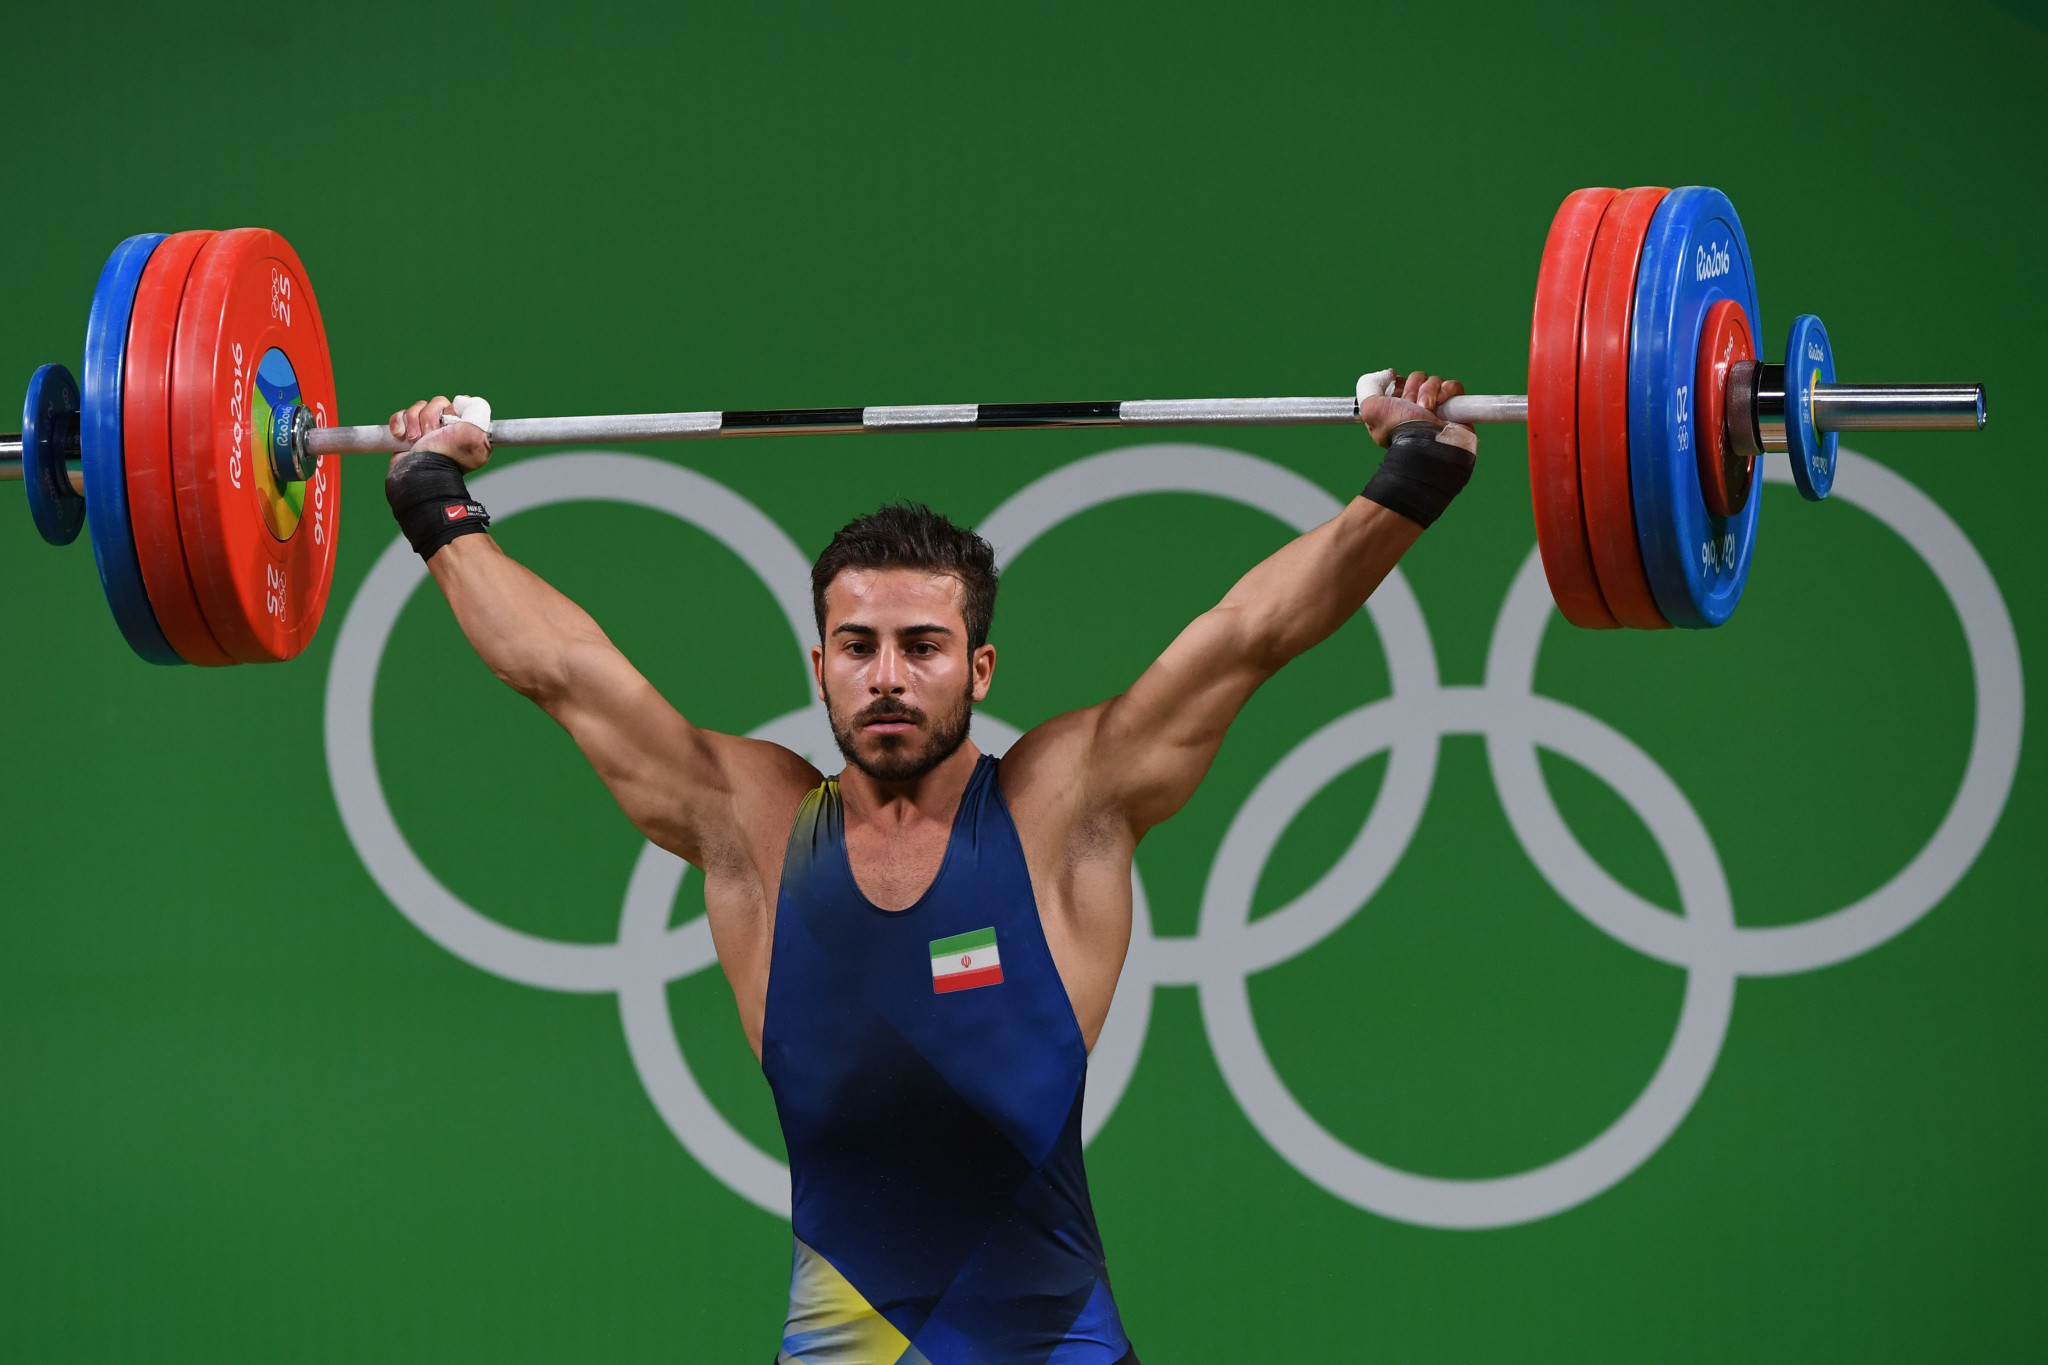 Reigning Olympic champion Kianoush Rostami will lead Iran's charge for medals ©Getty Images